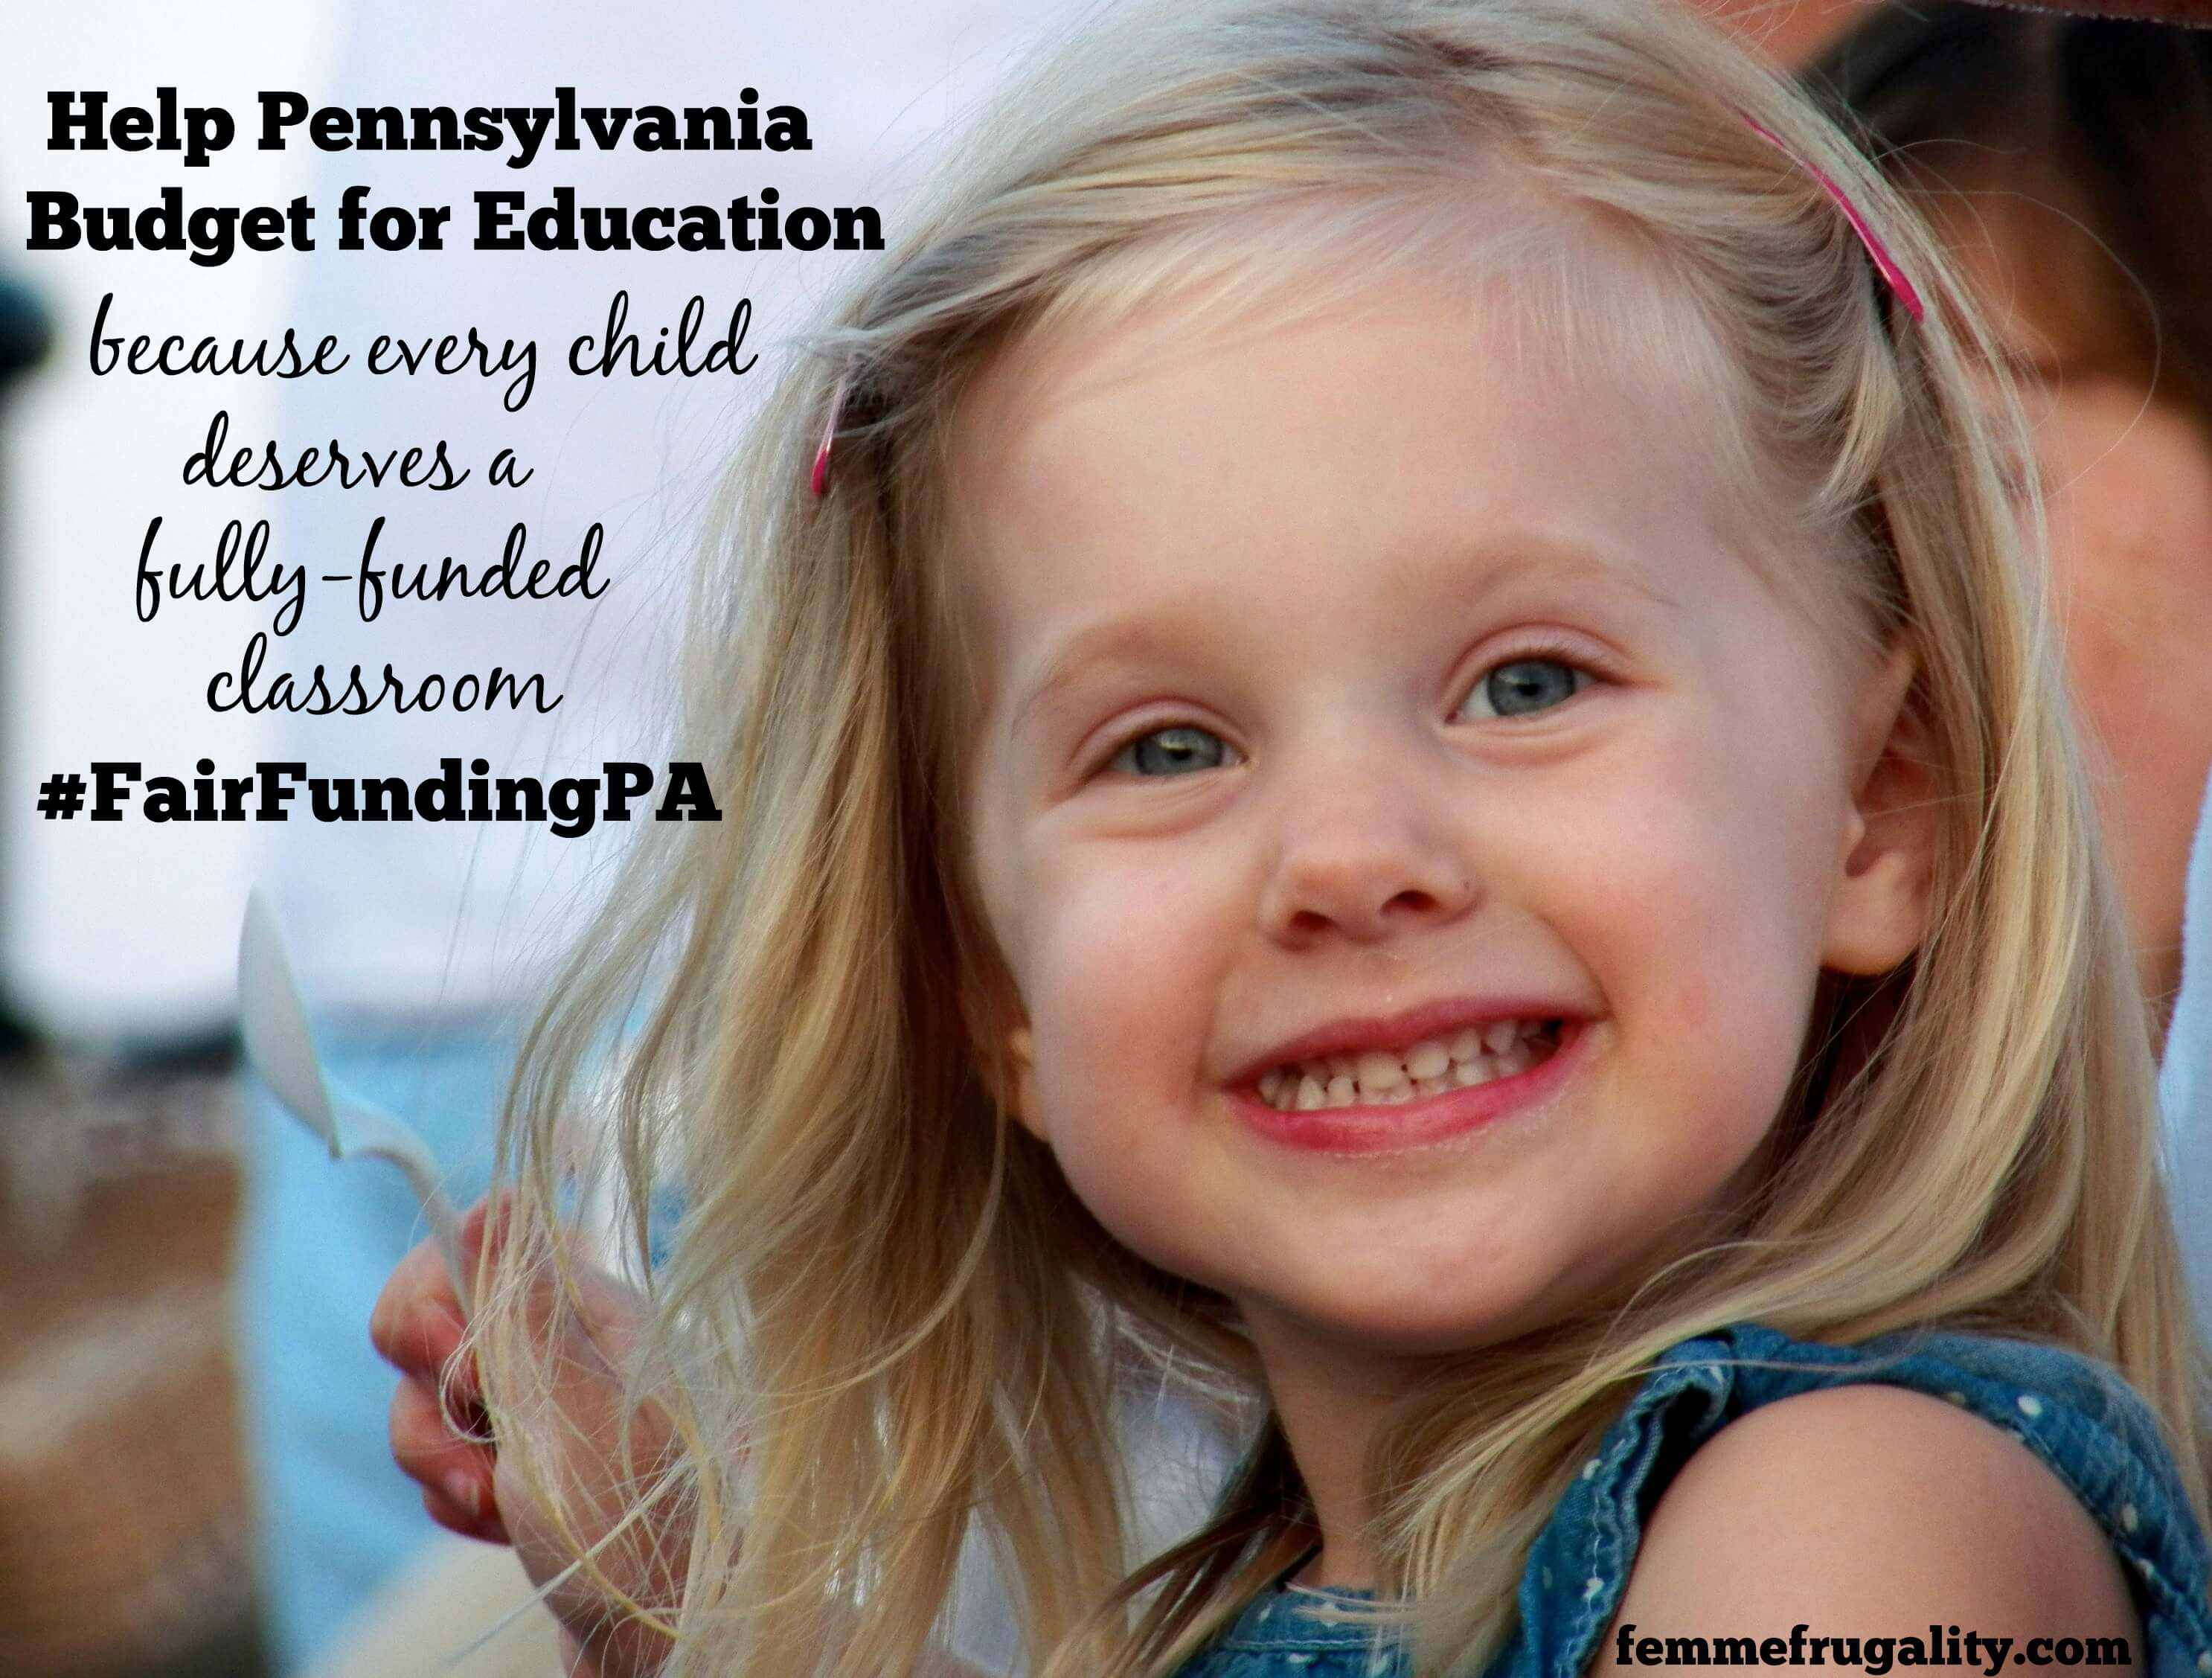 Pennsylvania is one of only three states without a basic funding formula for education. That needs to change.